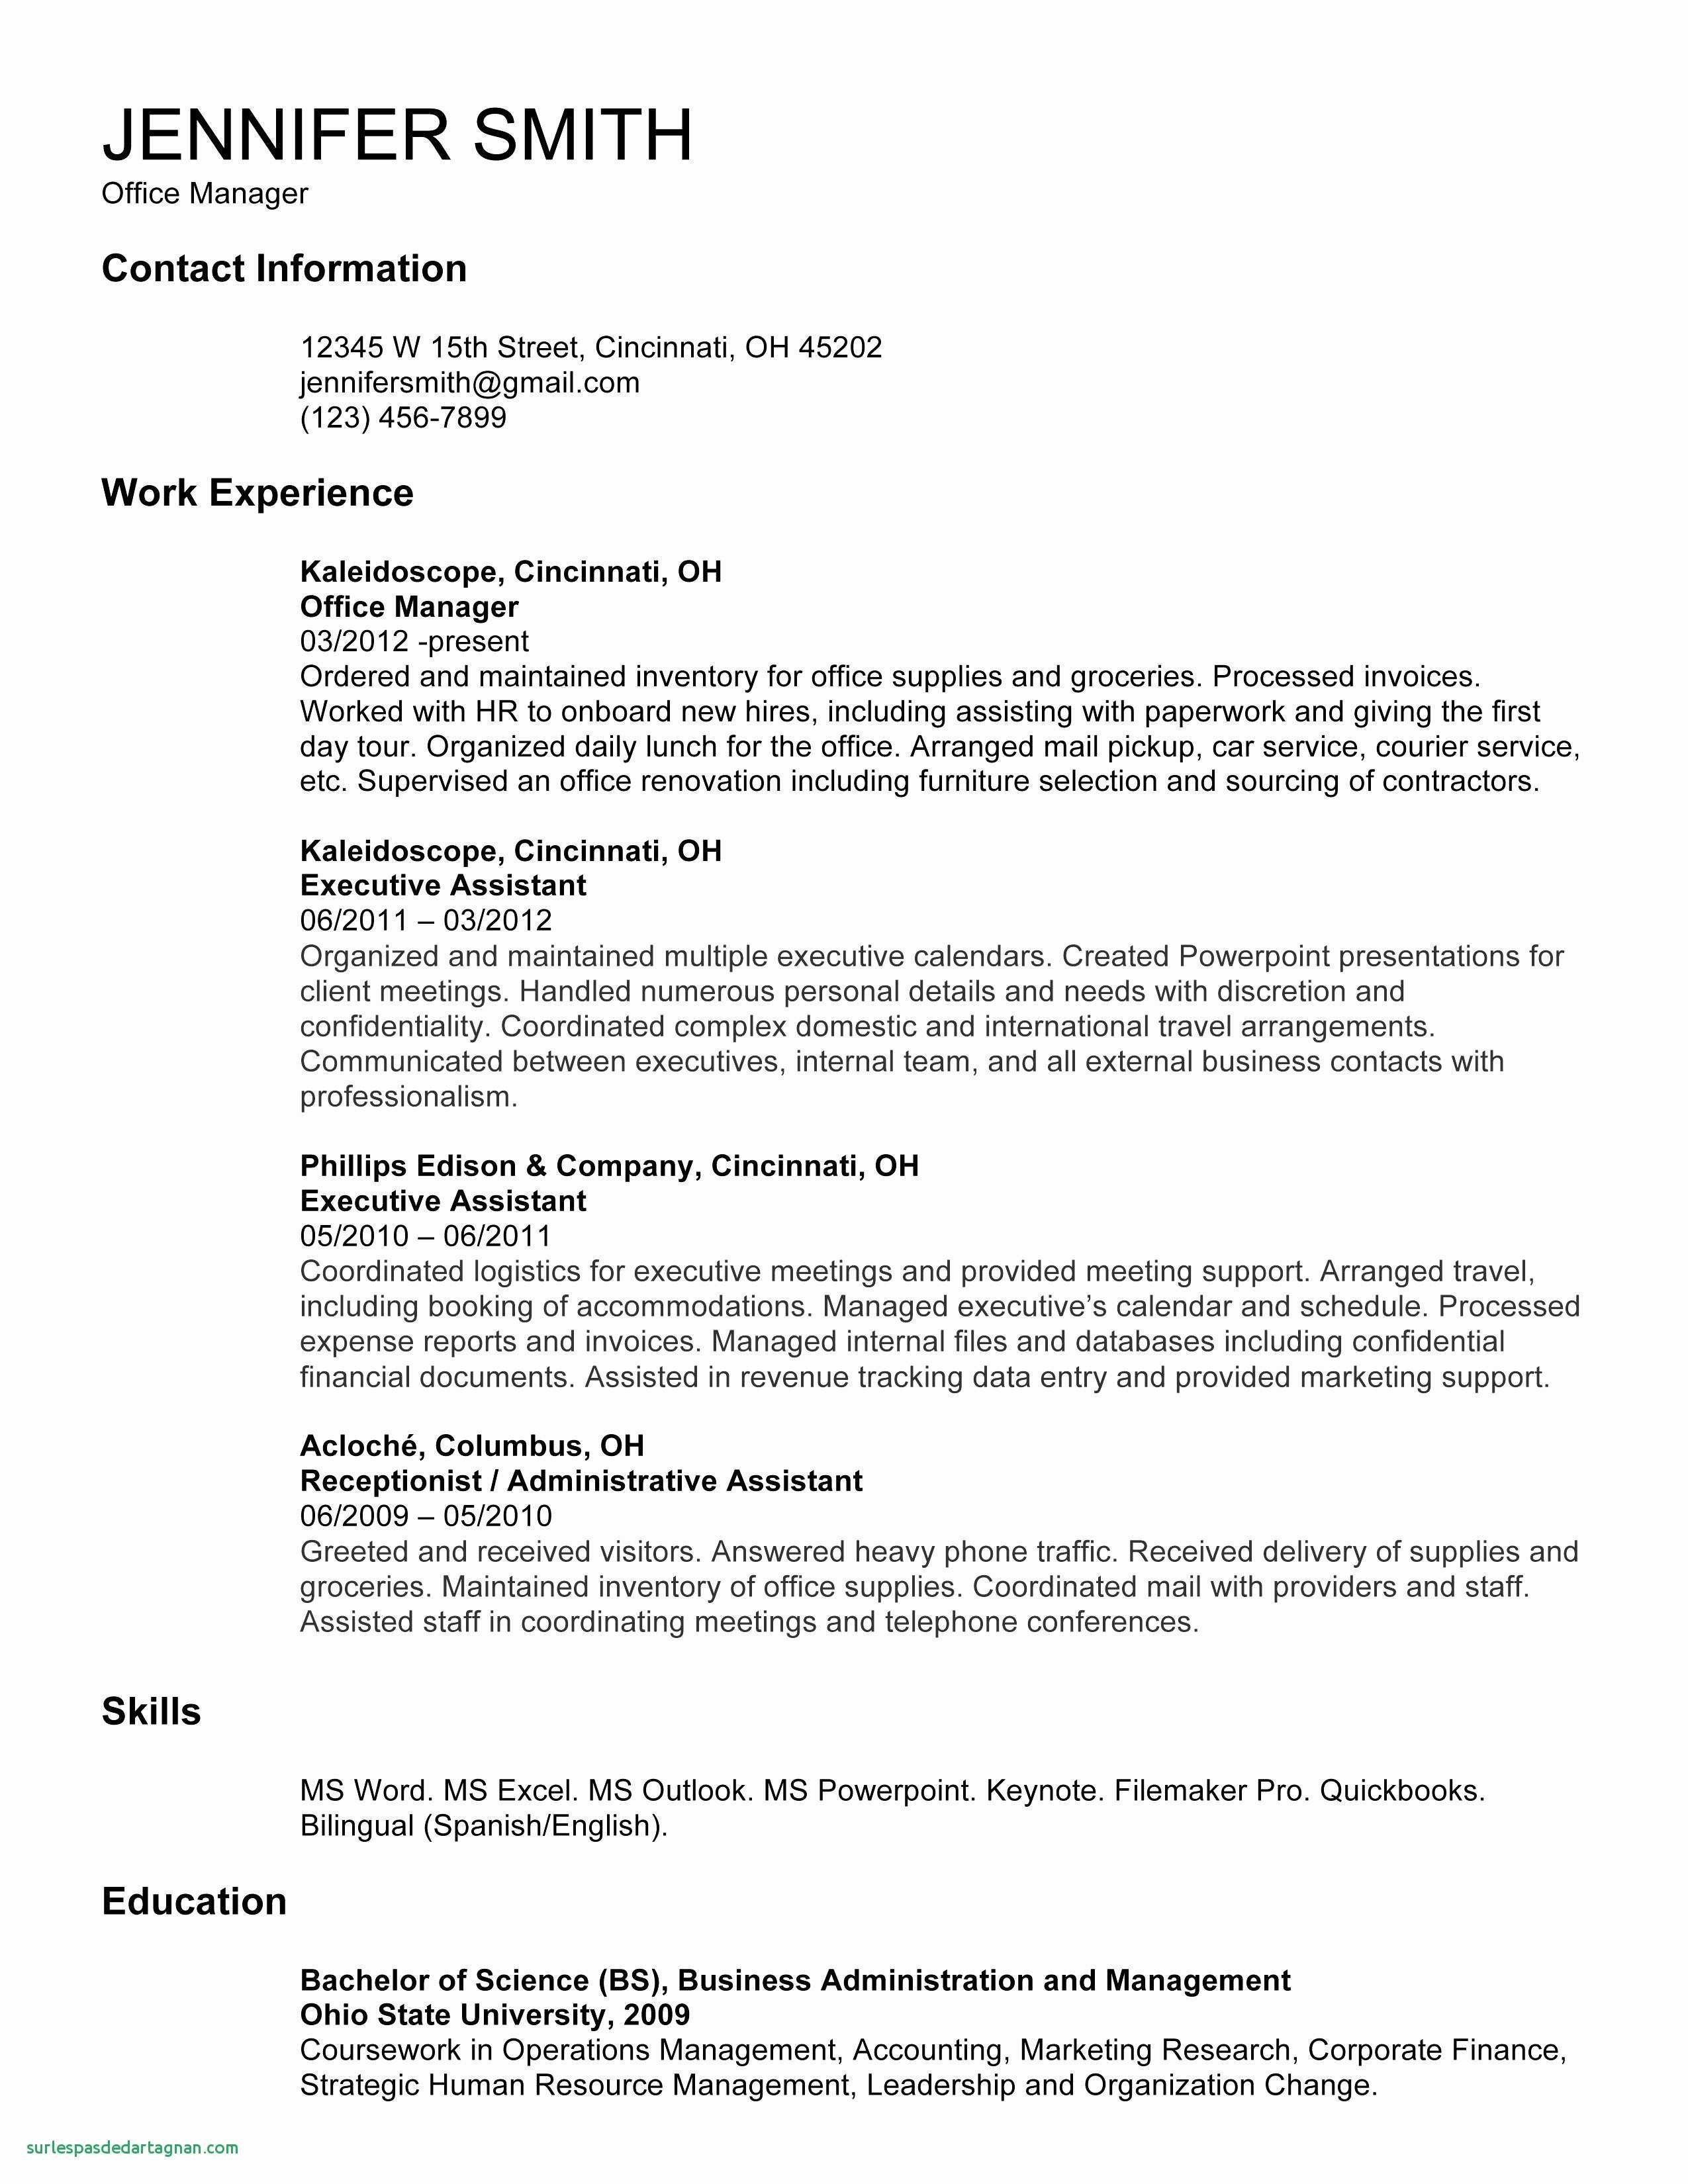 professional free resume templates example-Resume Template Download Free Unique ¢Ë†Å¡ Resume Template Download Free Luxury Empty Resume 0d Archives 14-s